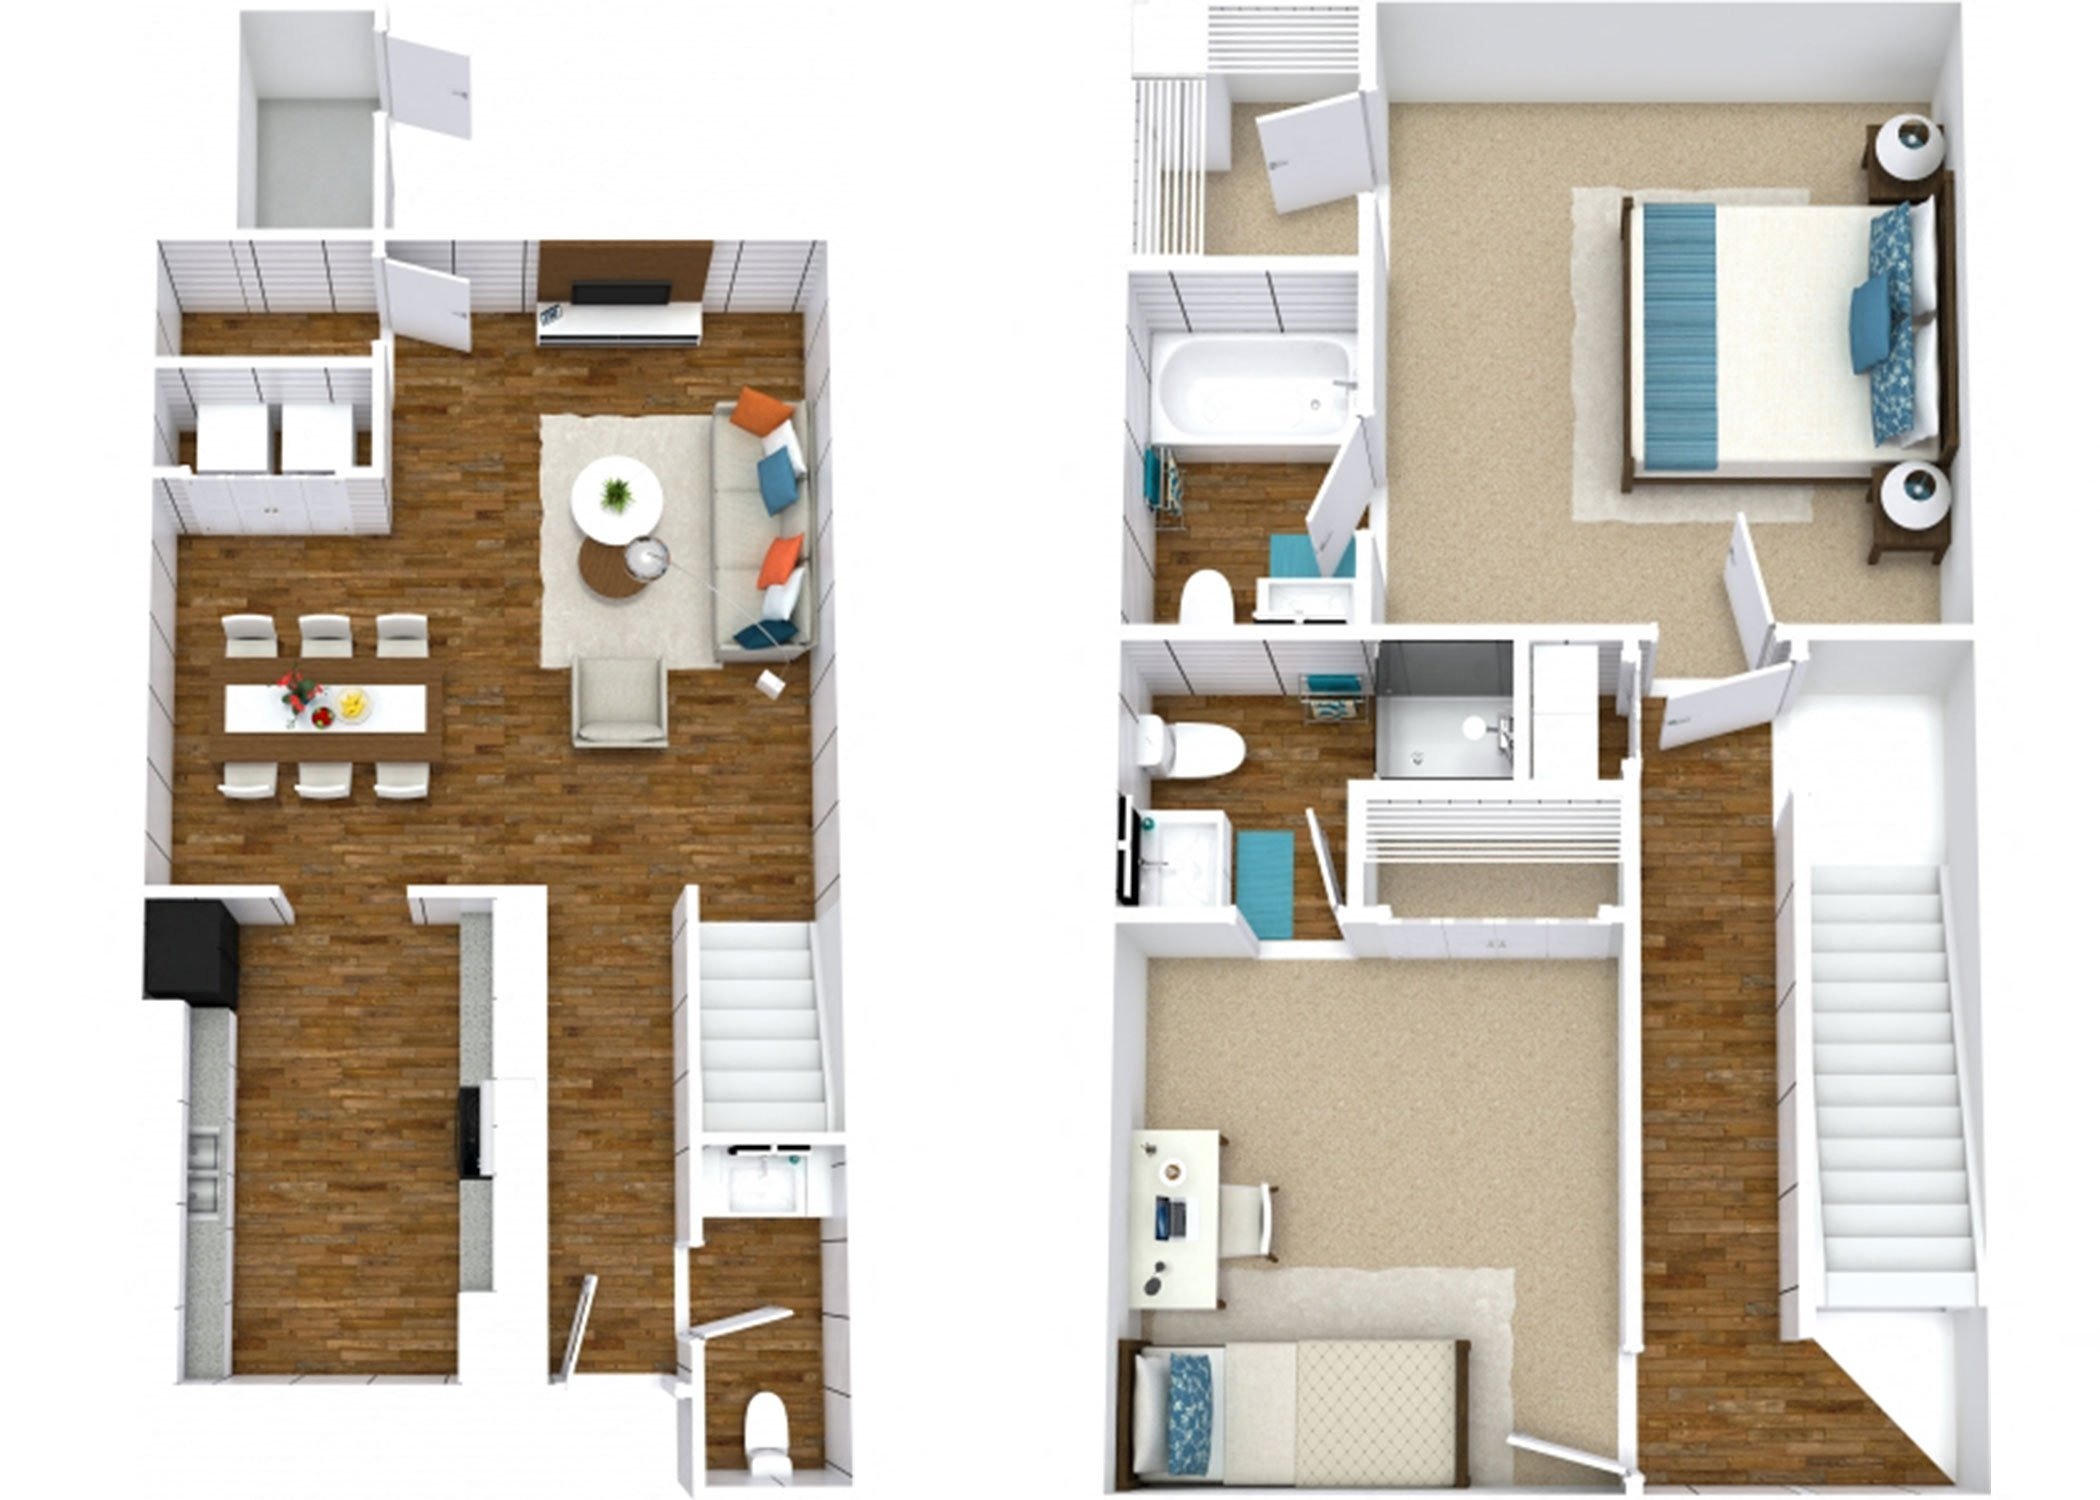 The Pine Townhome